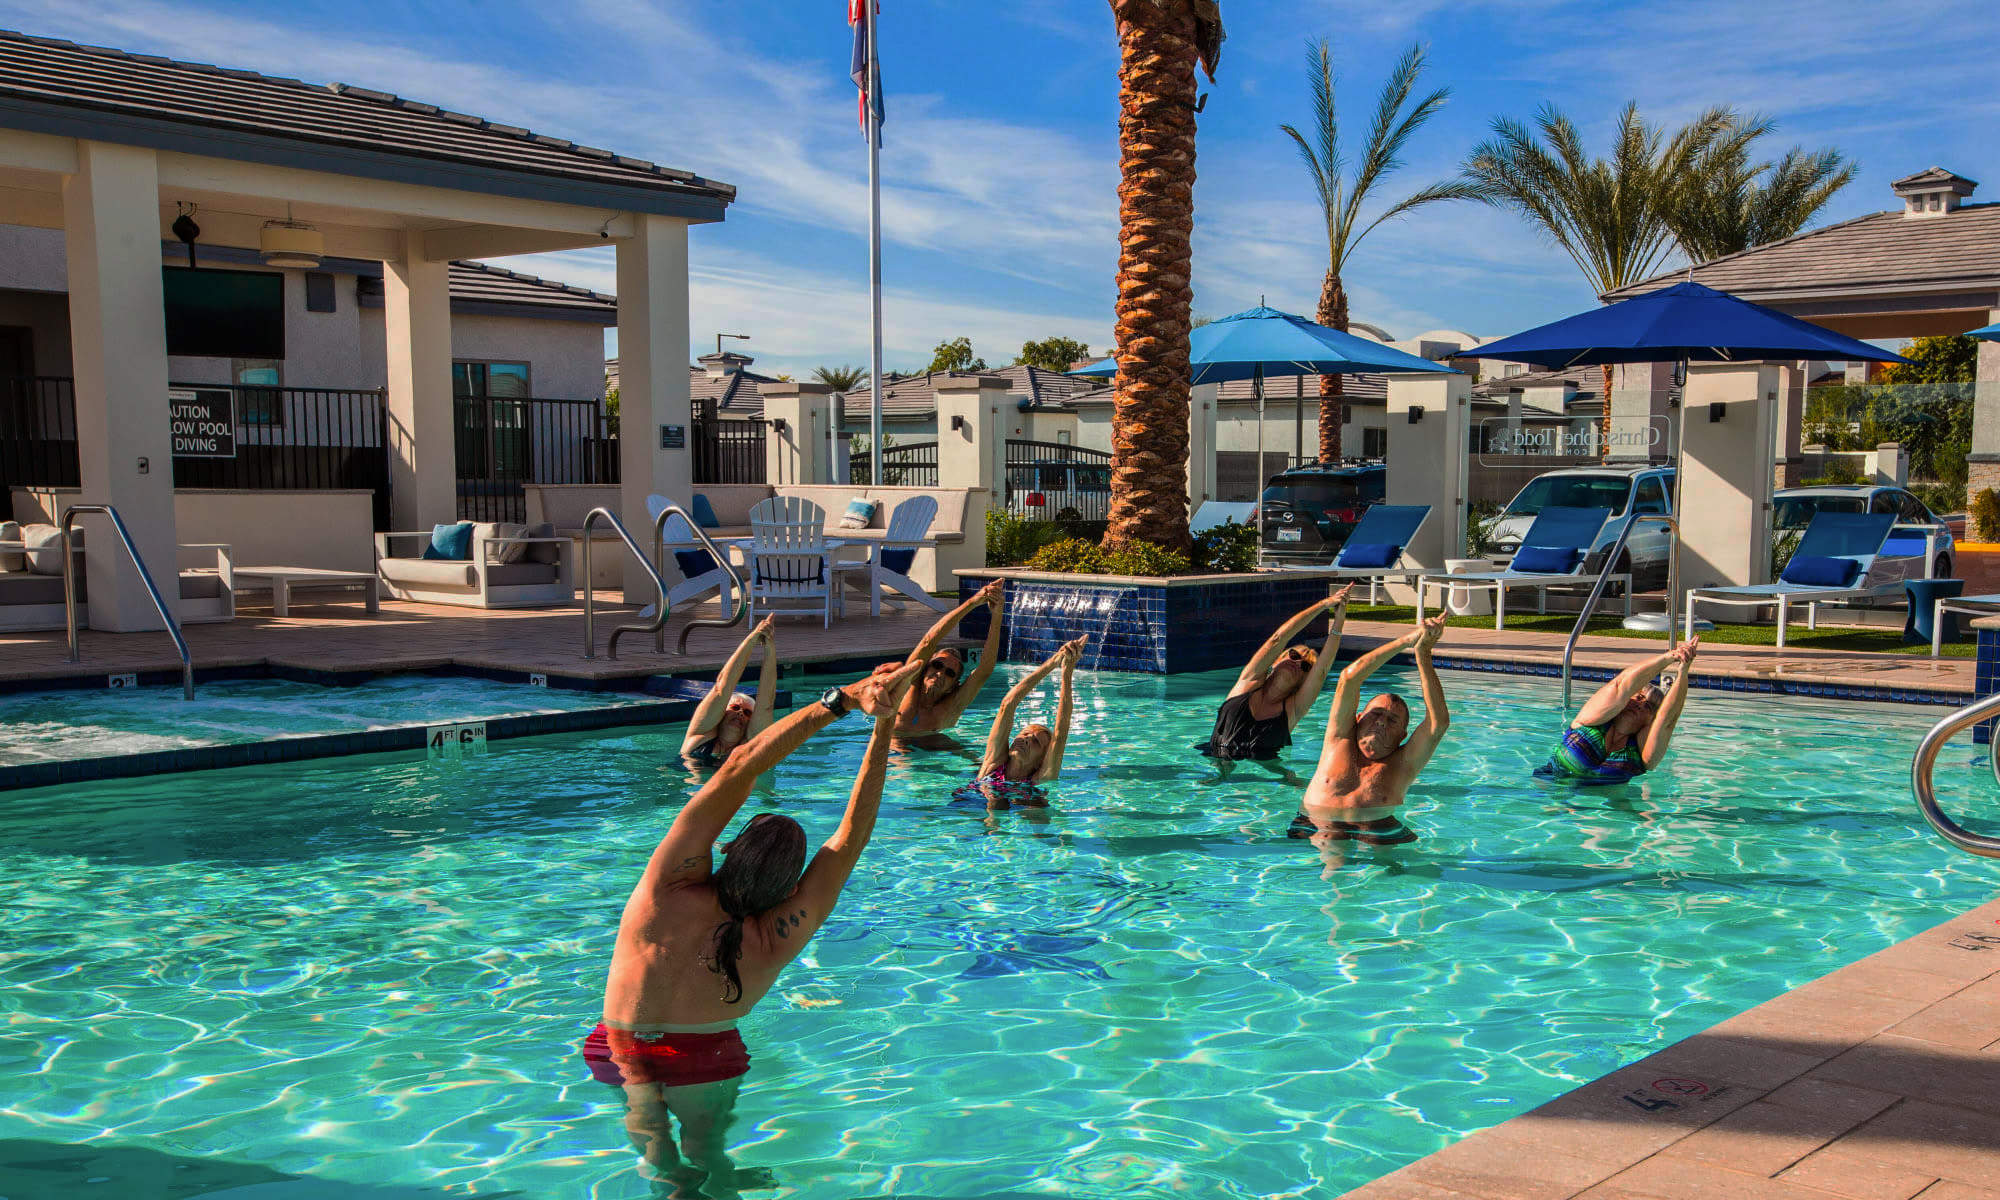 Apartments at Christopher Todd Communities on Greenway in Surprise, Arizona